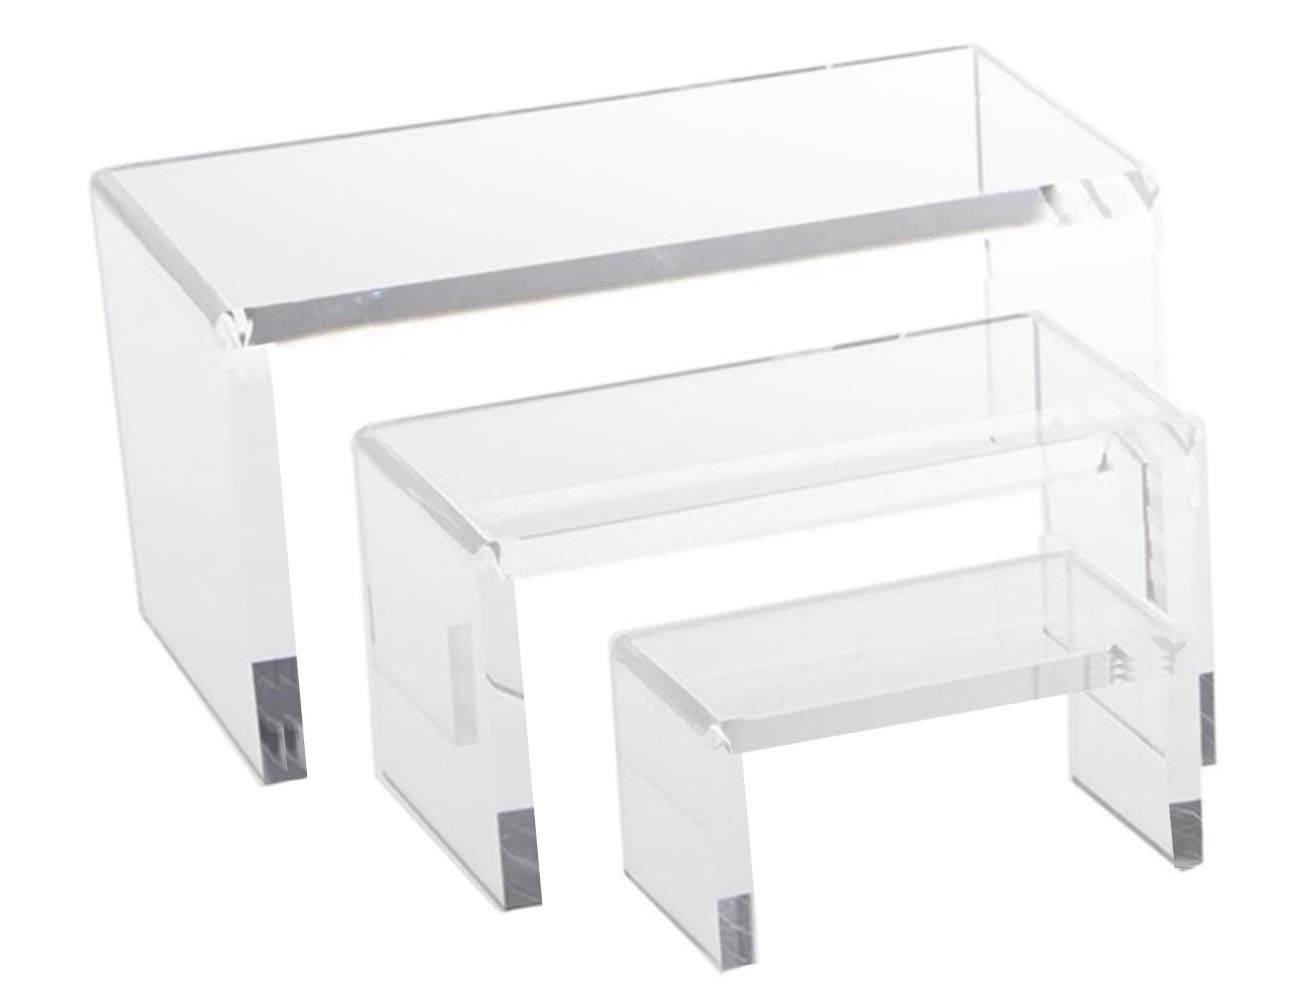 Heavy Duty Thick 1 set of 3 Piece Acrylic Risers